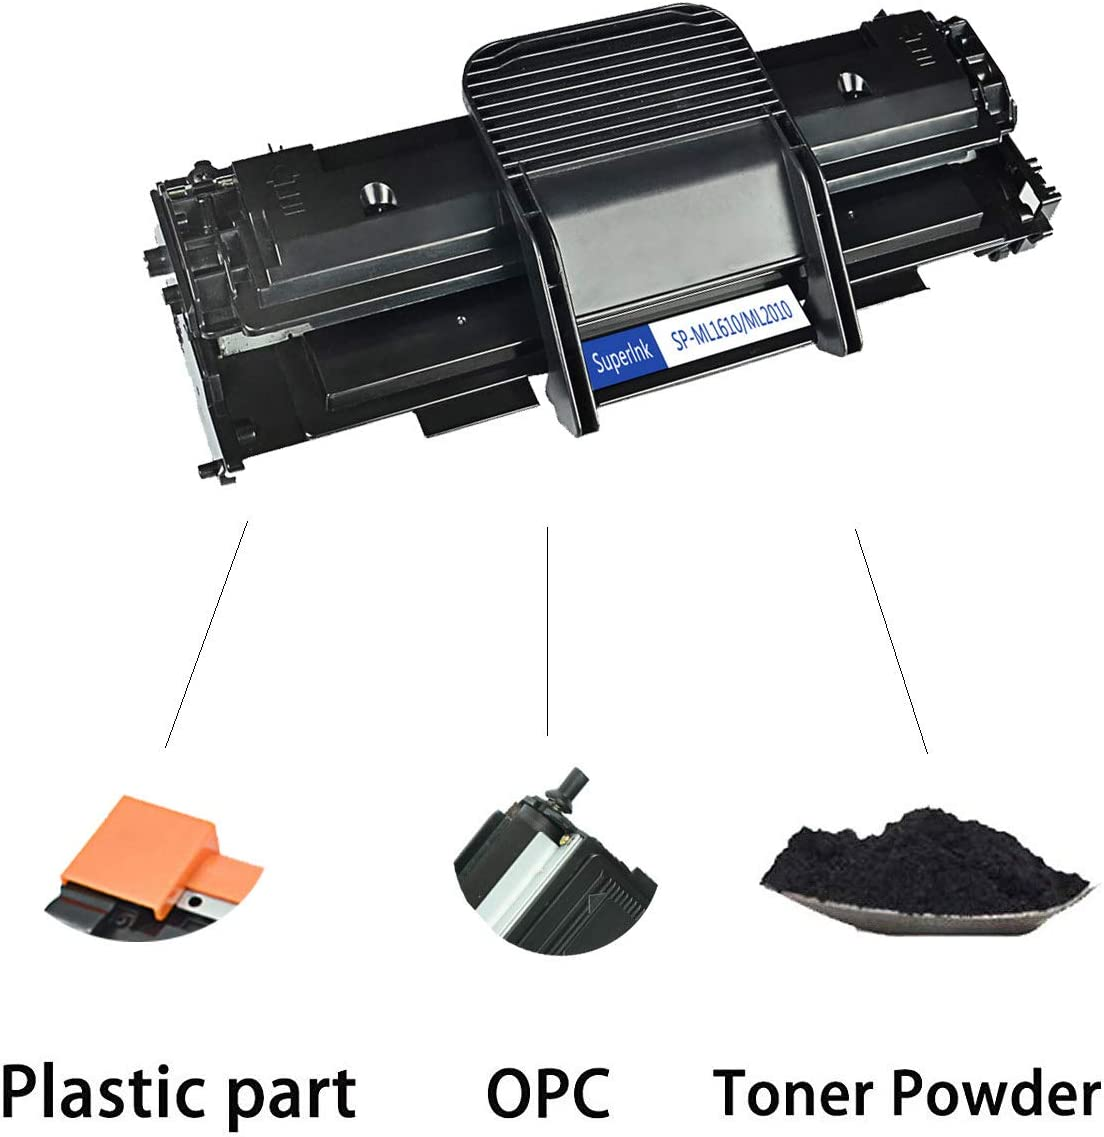 Black, 1-Pack SuperInk Toner Cartridge Replacement Compatible for Samsung ML2010 to use with ML-2010 ML-2010D3 ML-2010P ML-2010R ML-2010PR Printer